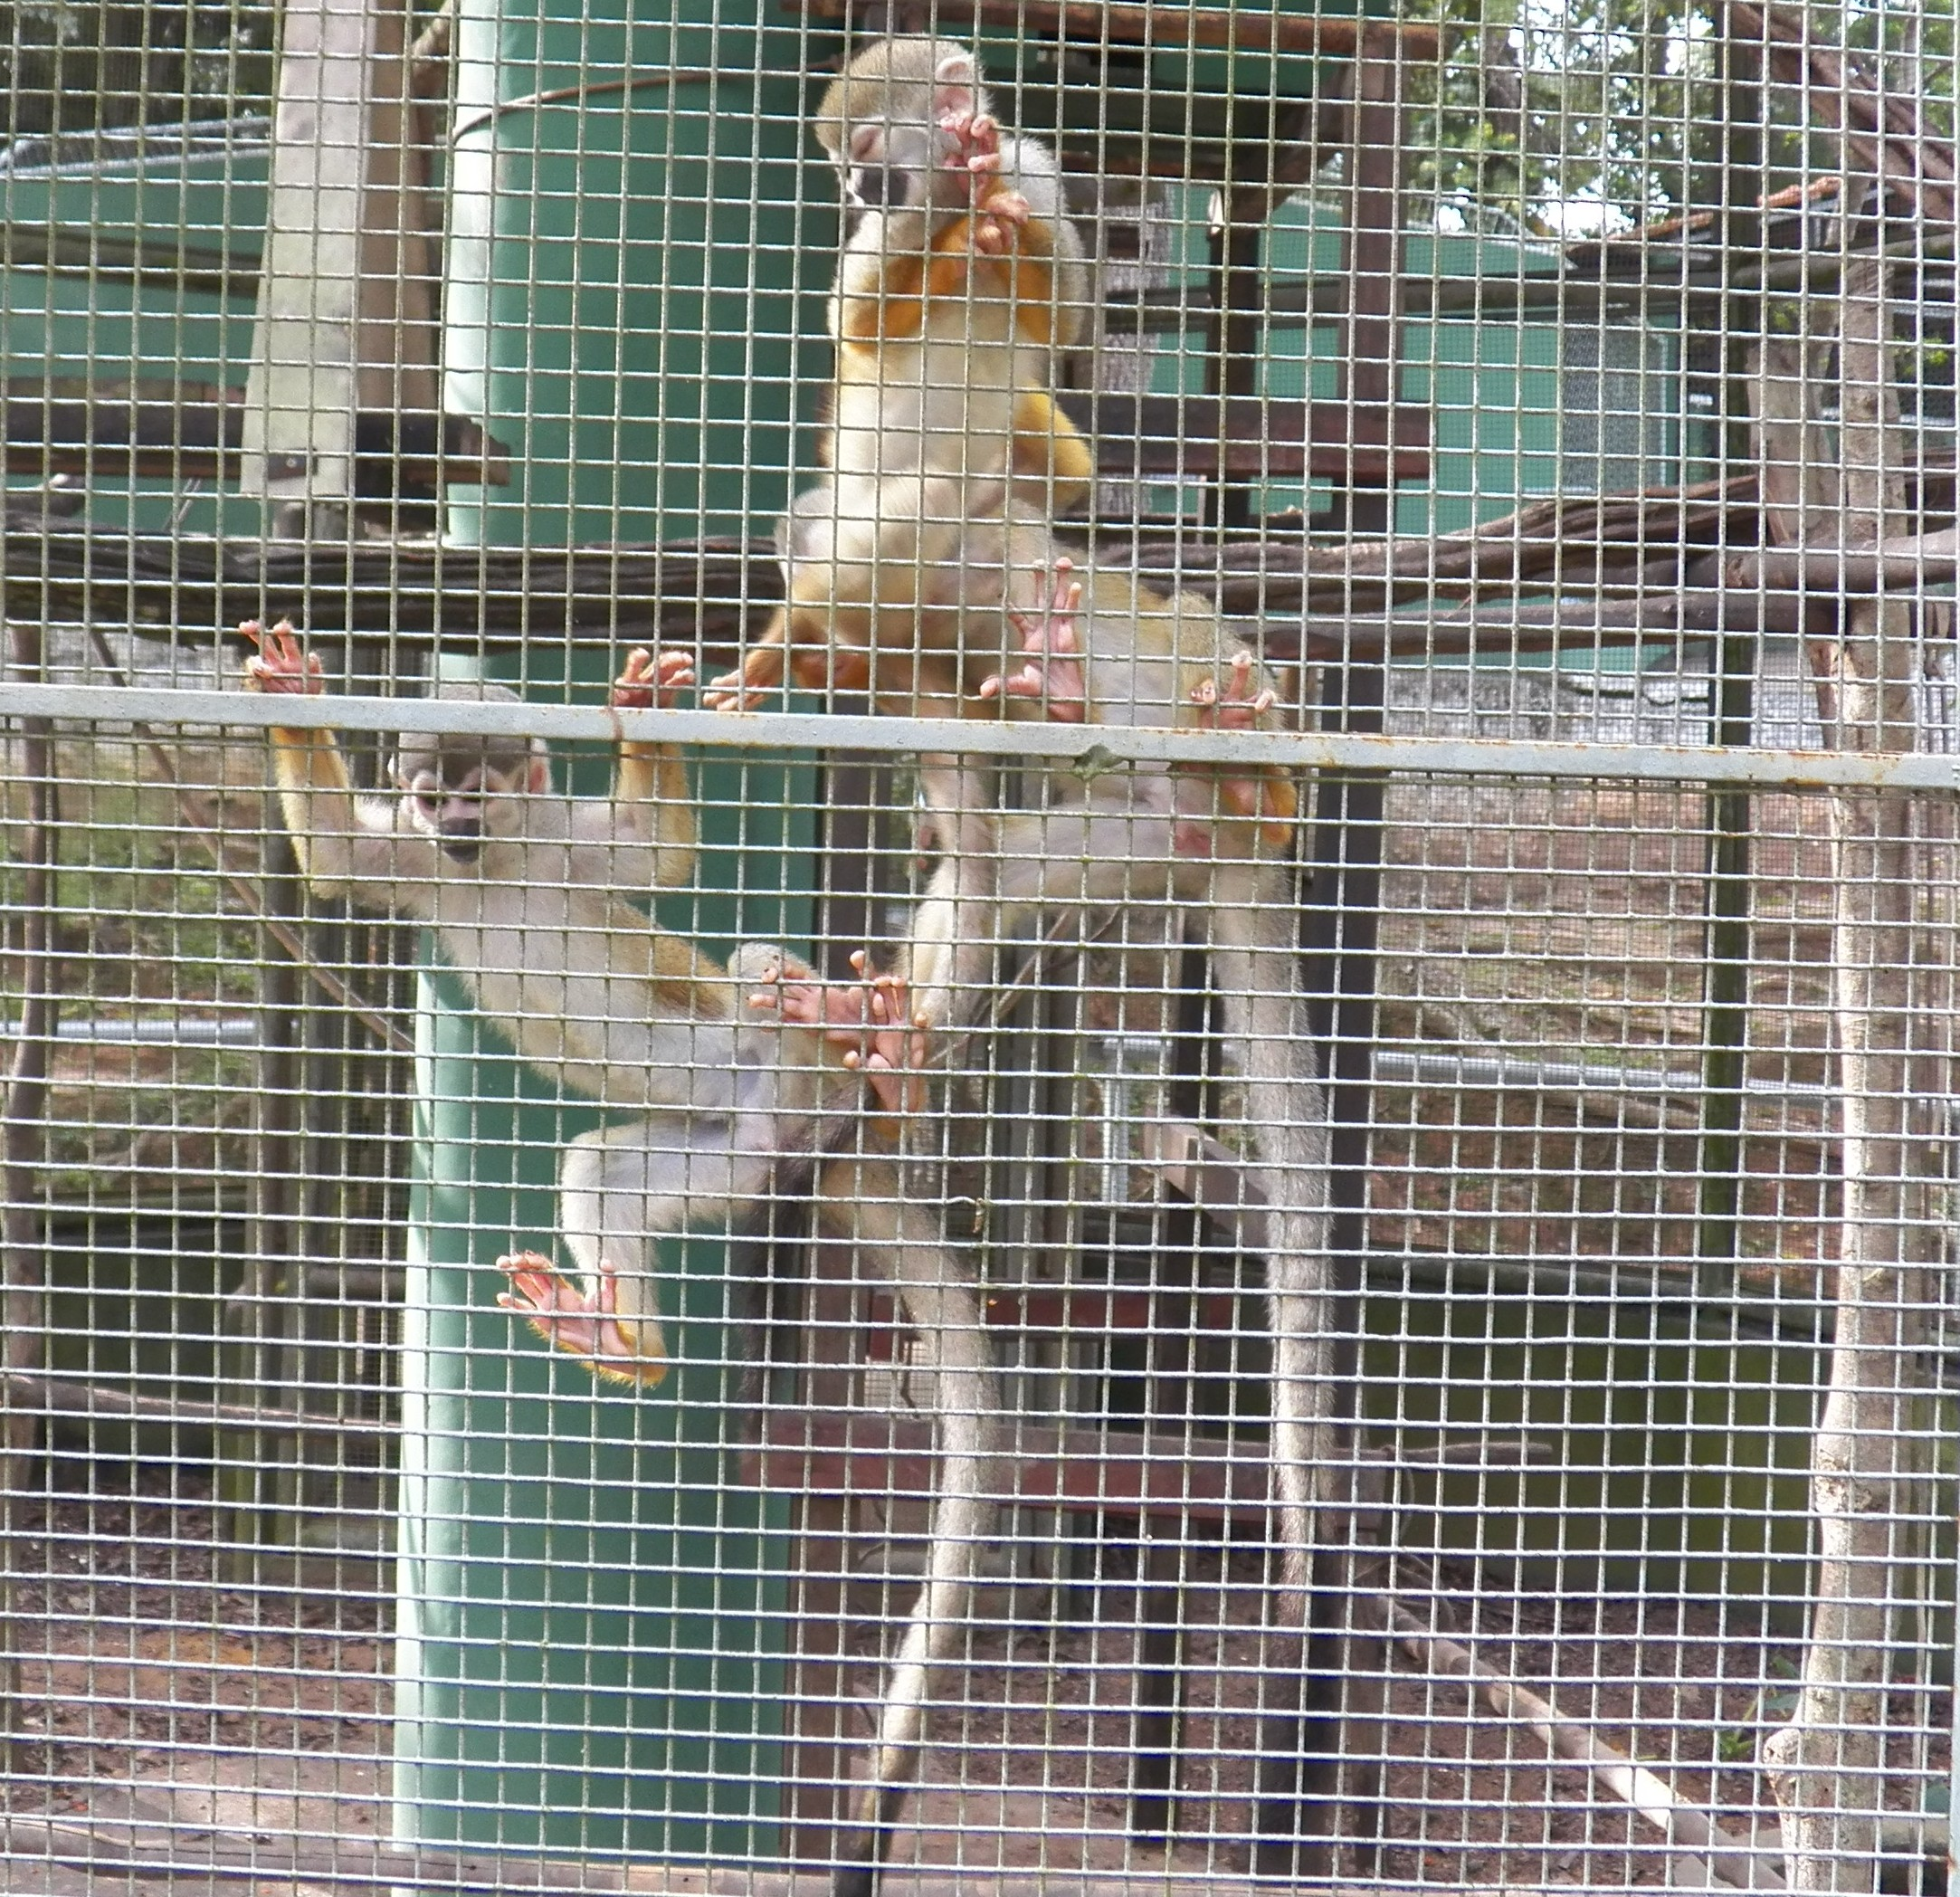 Some monkeys at the zoo in Manaus, Amazonas, Brazil. Photograph taken by Patrick Carpen around May, 2016.